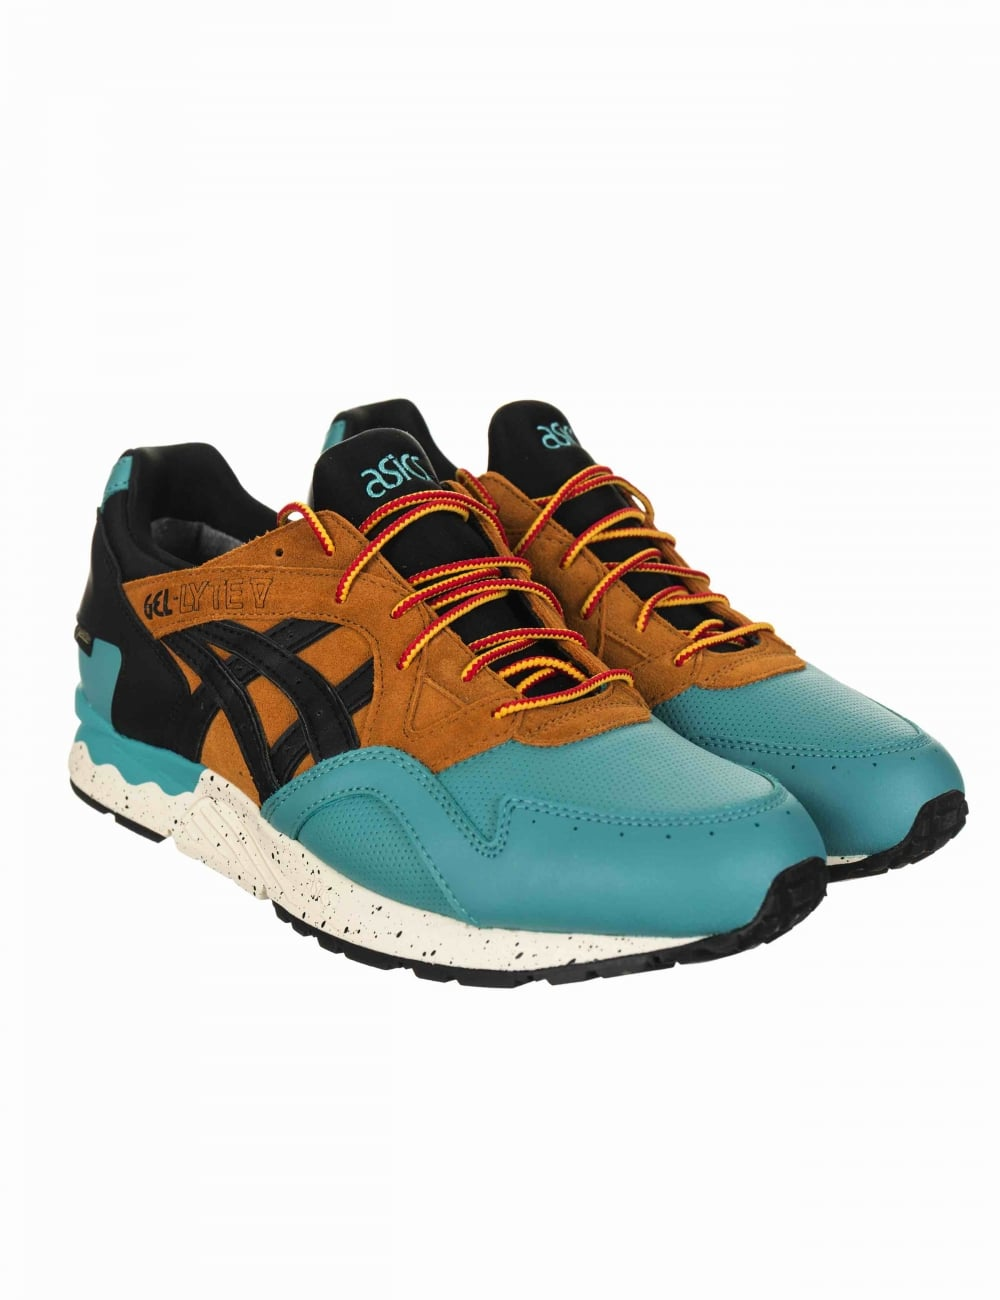 5592b757c71b1 Asics Gel Lyte V Gore-Tex Shoes - Kingfisher Black - Footwear from ...